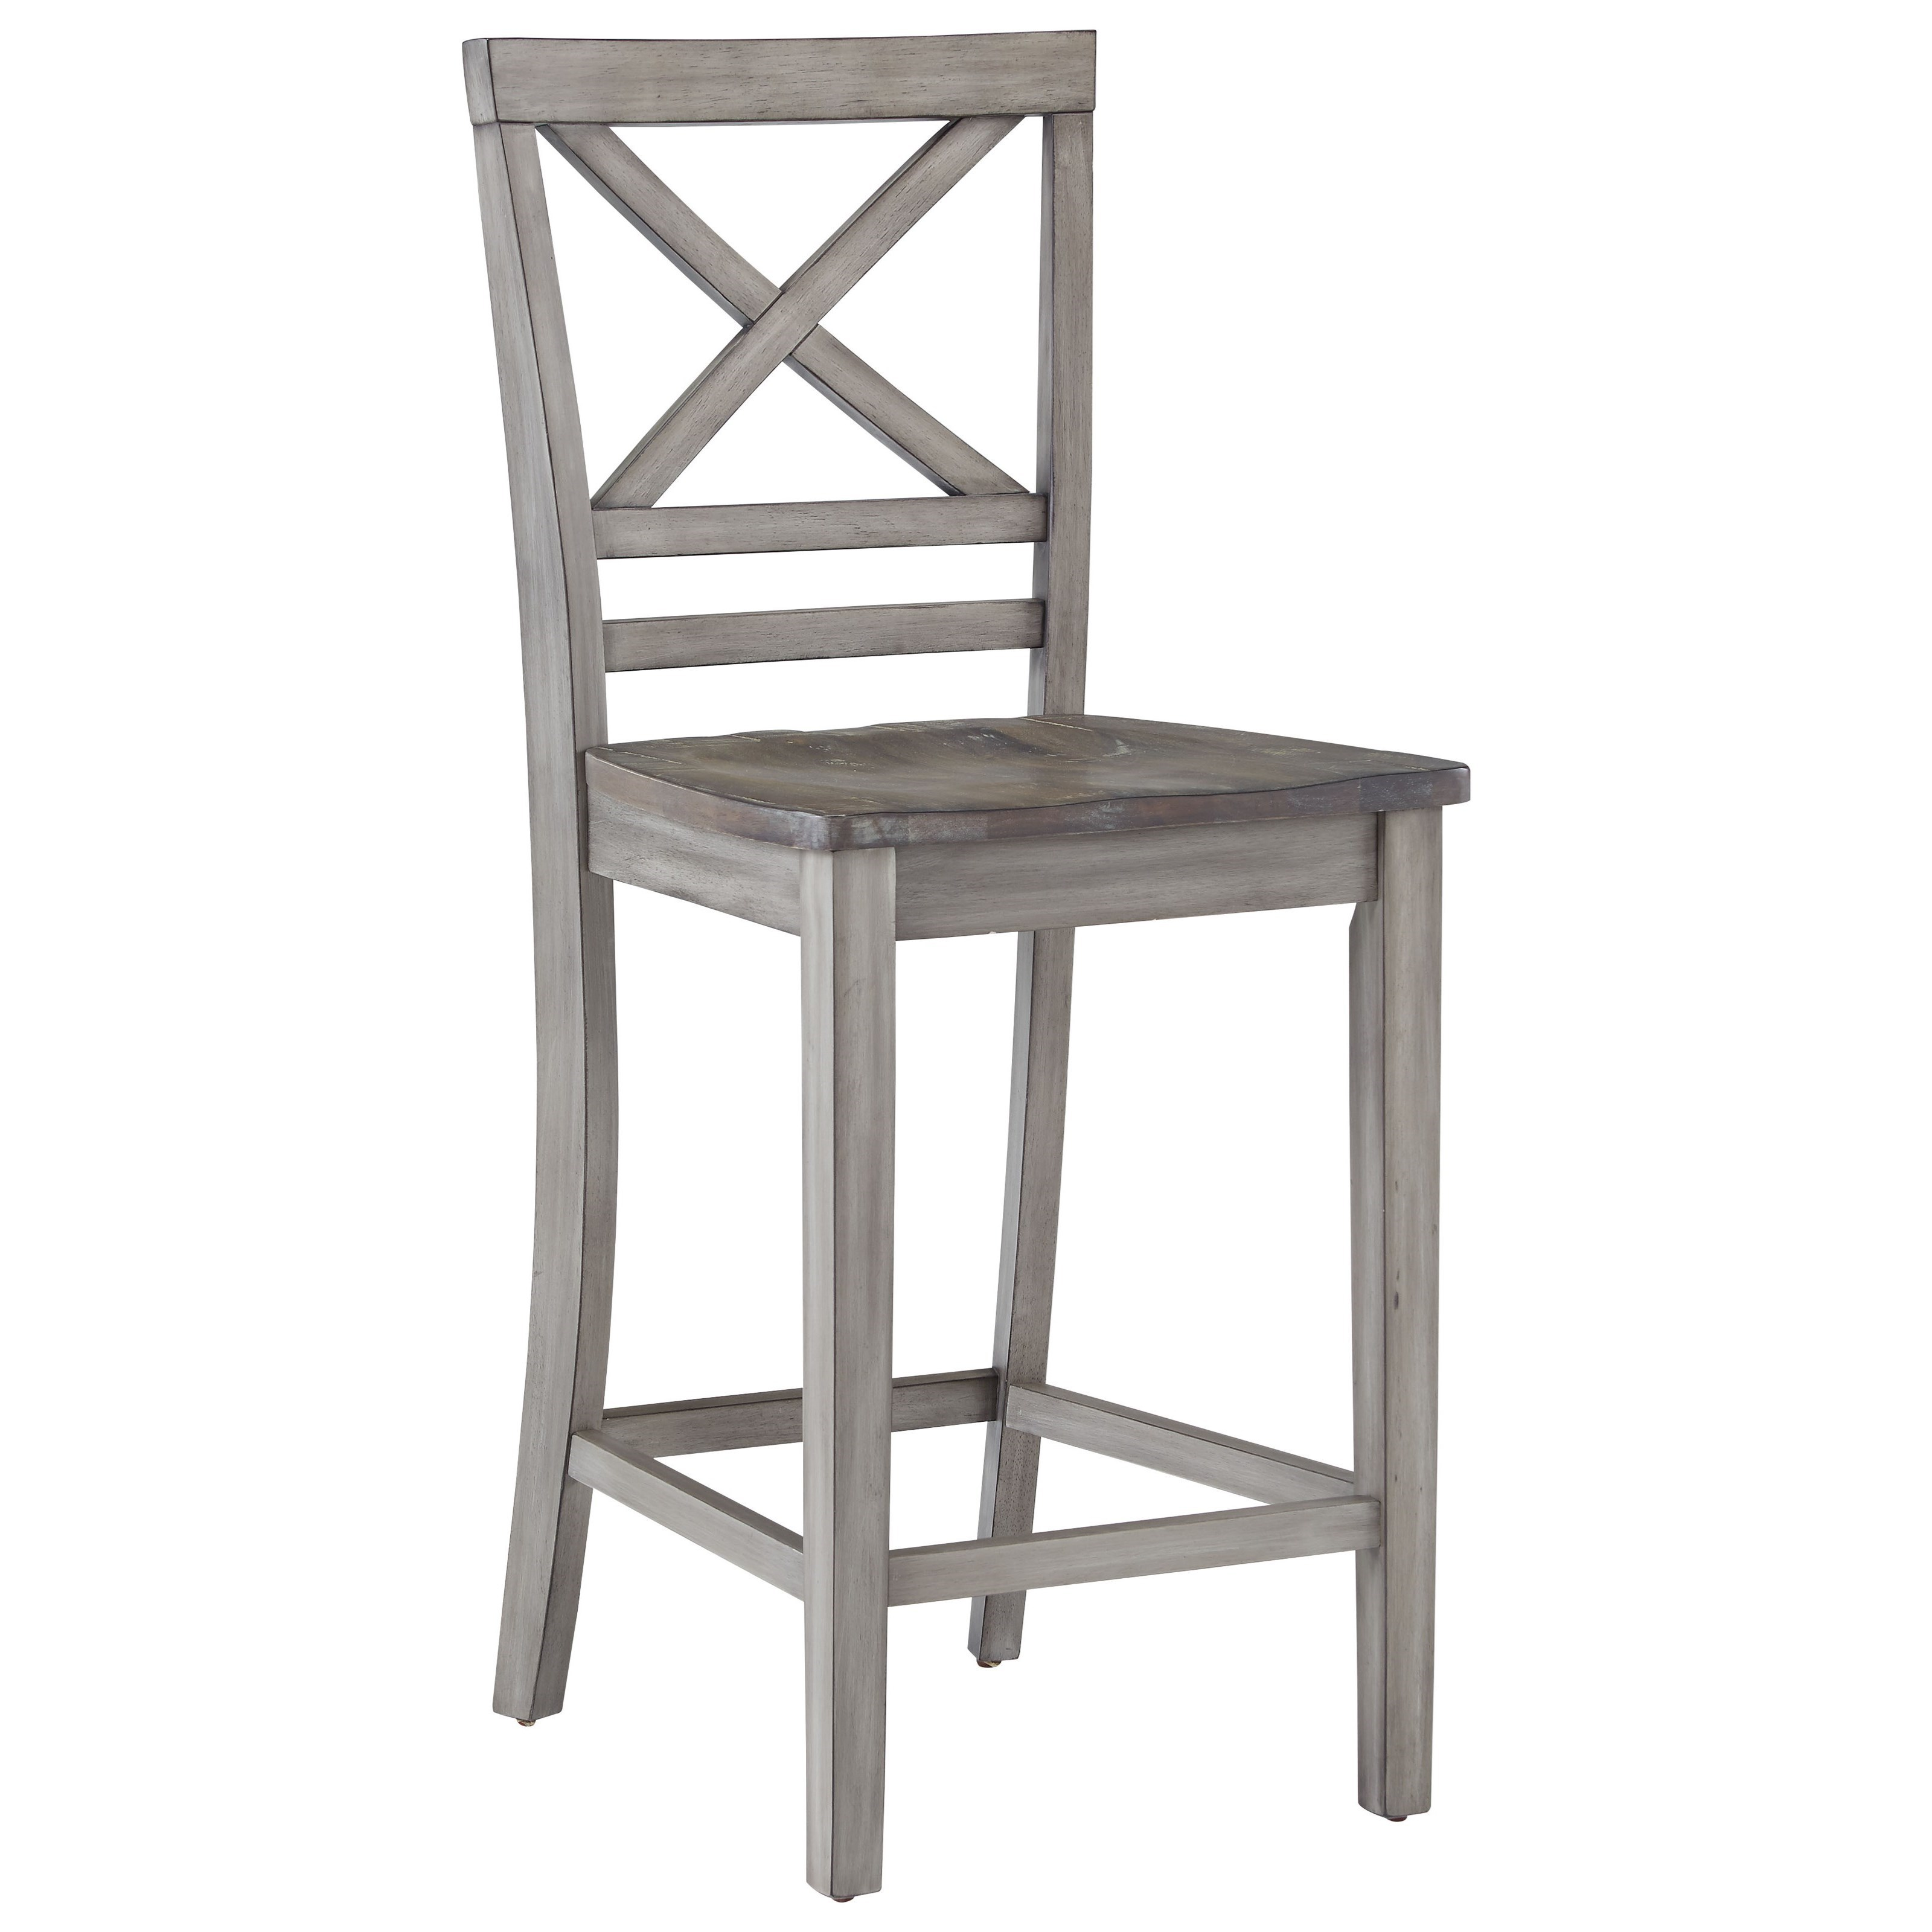 Standard Furniture Fairhaven Rustic Table Set with Six  : products2Fstandardfurniture2Fcolor2Ffairhaven2012860128722B2x12874 b5 from www.darvin.com size 3200 x 3200 jpeg 534kB